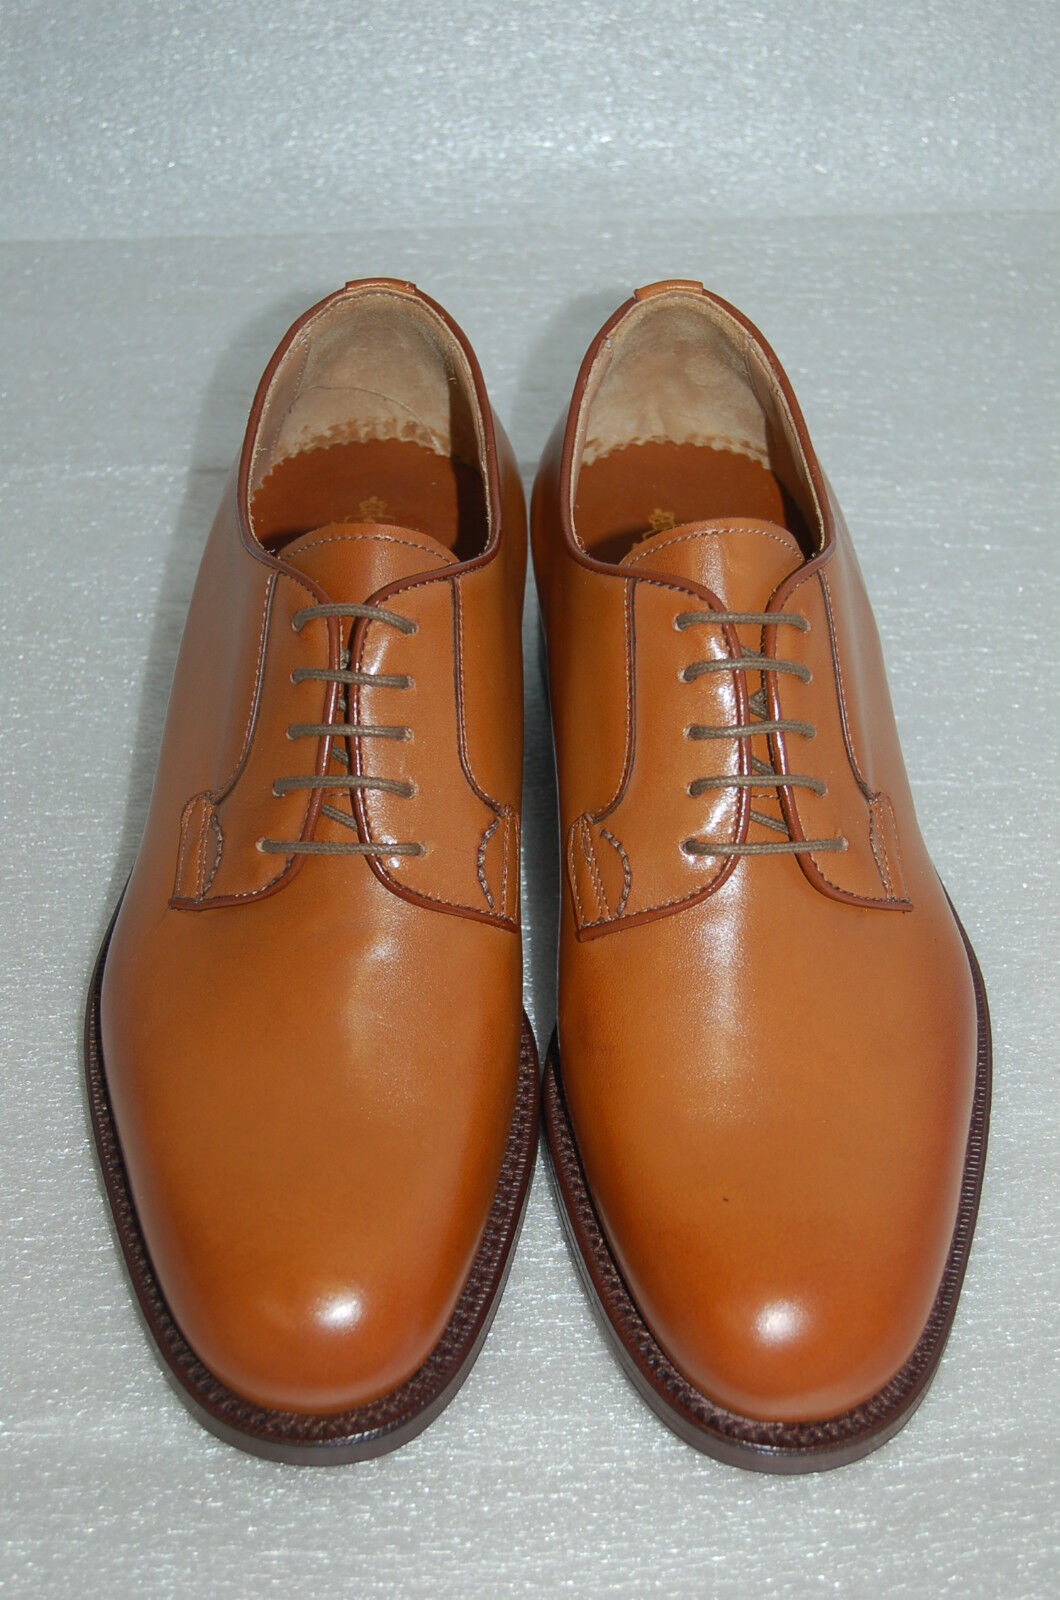 MAN - 39 - 5eu - DERBY - TAN CALF -VITELLO COL.BOMBAY- LEATHER SOLE-FONDO CUOIO